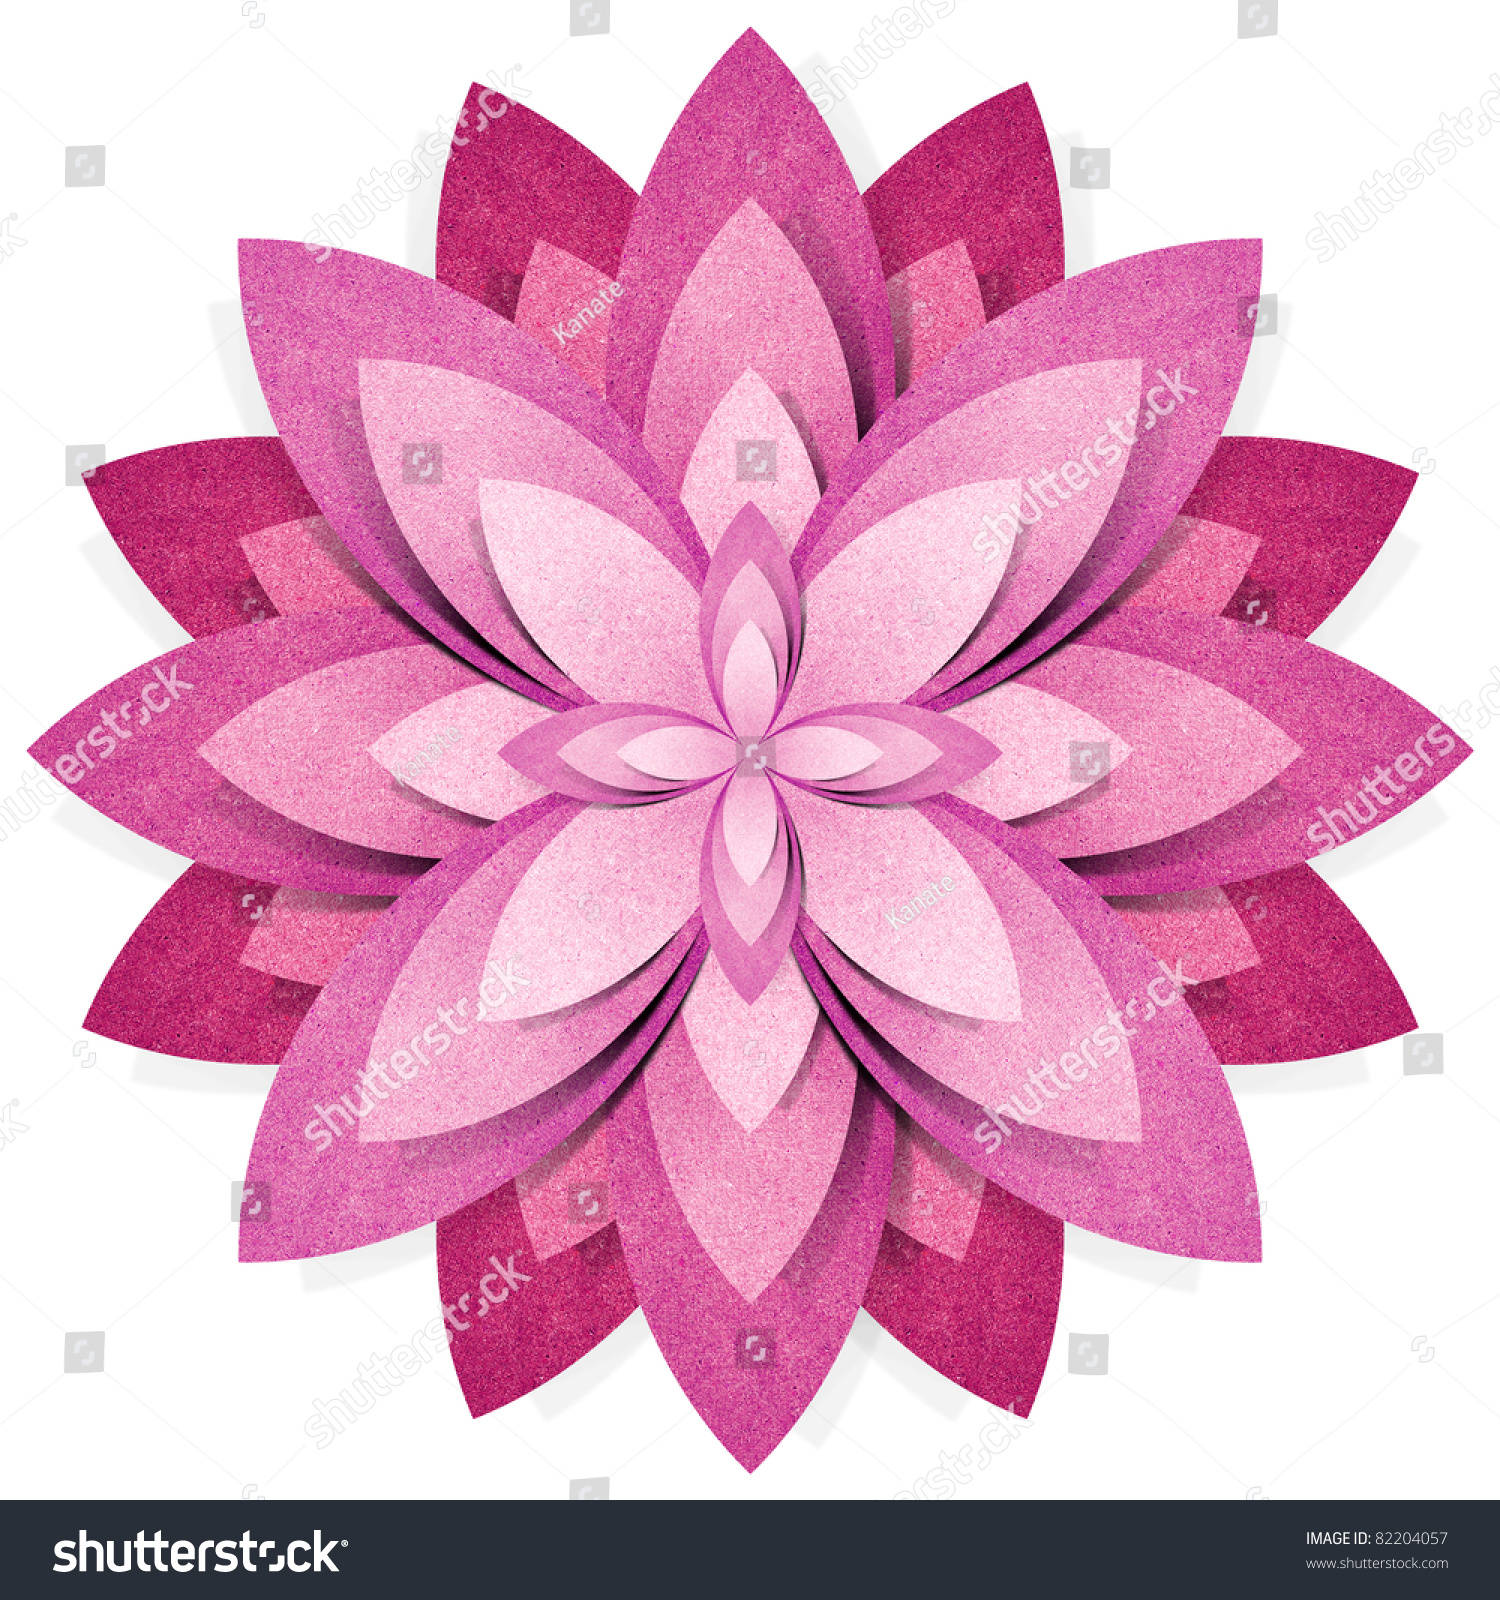 Flower Origami Recycled Paper Craft Stick Stock Illustration